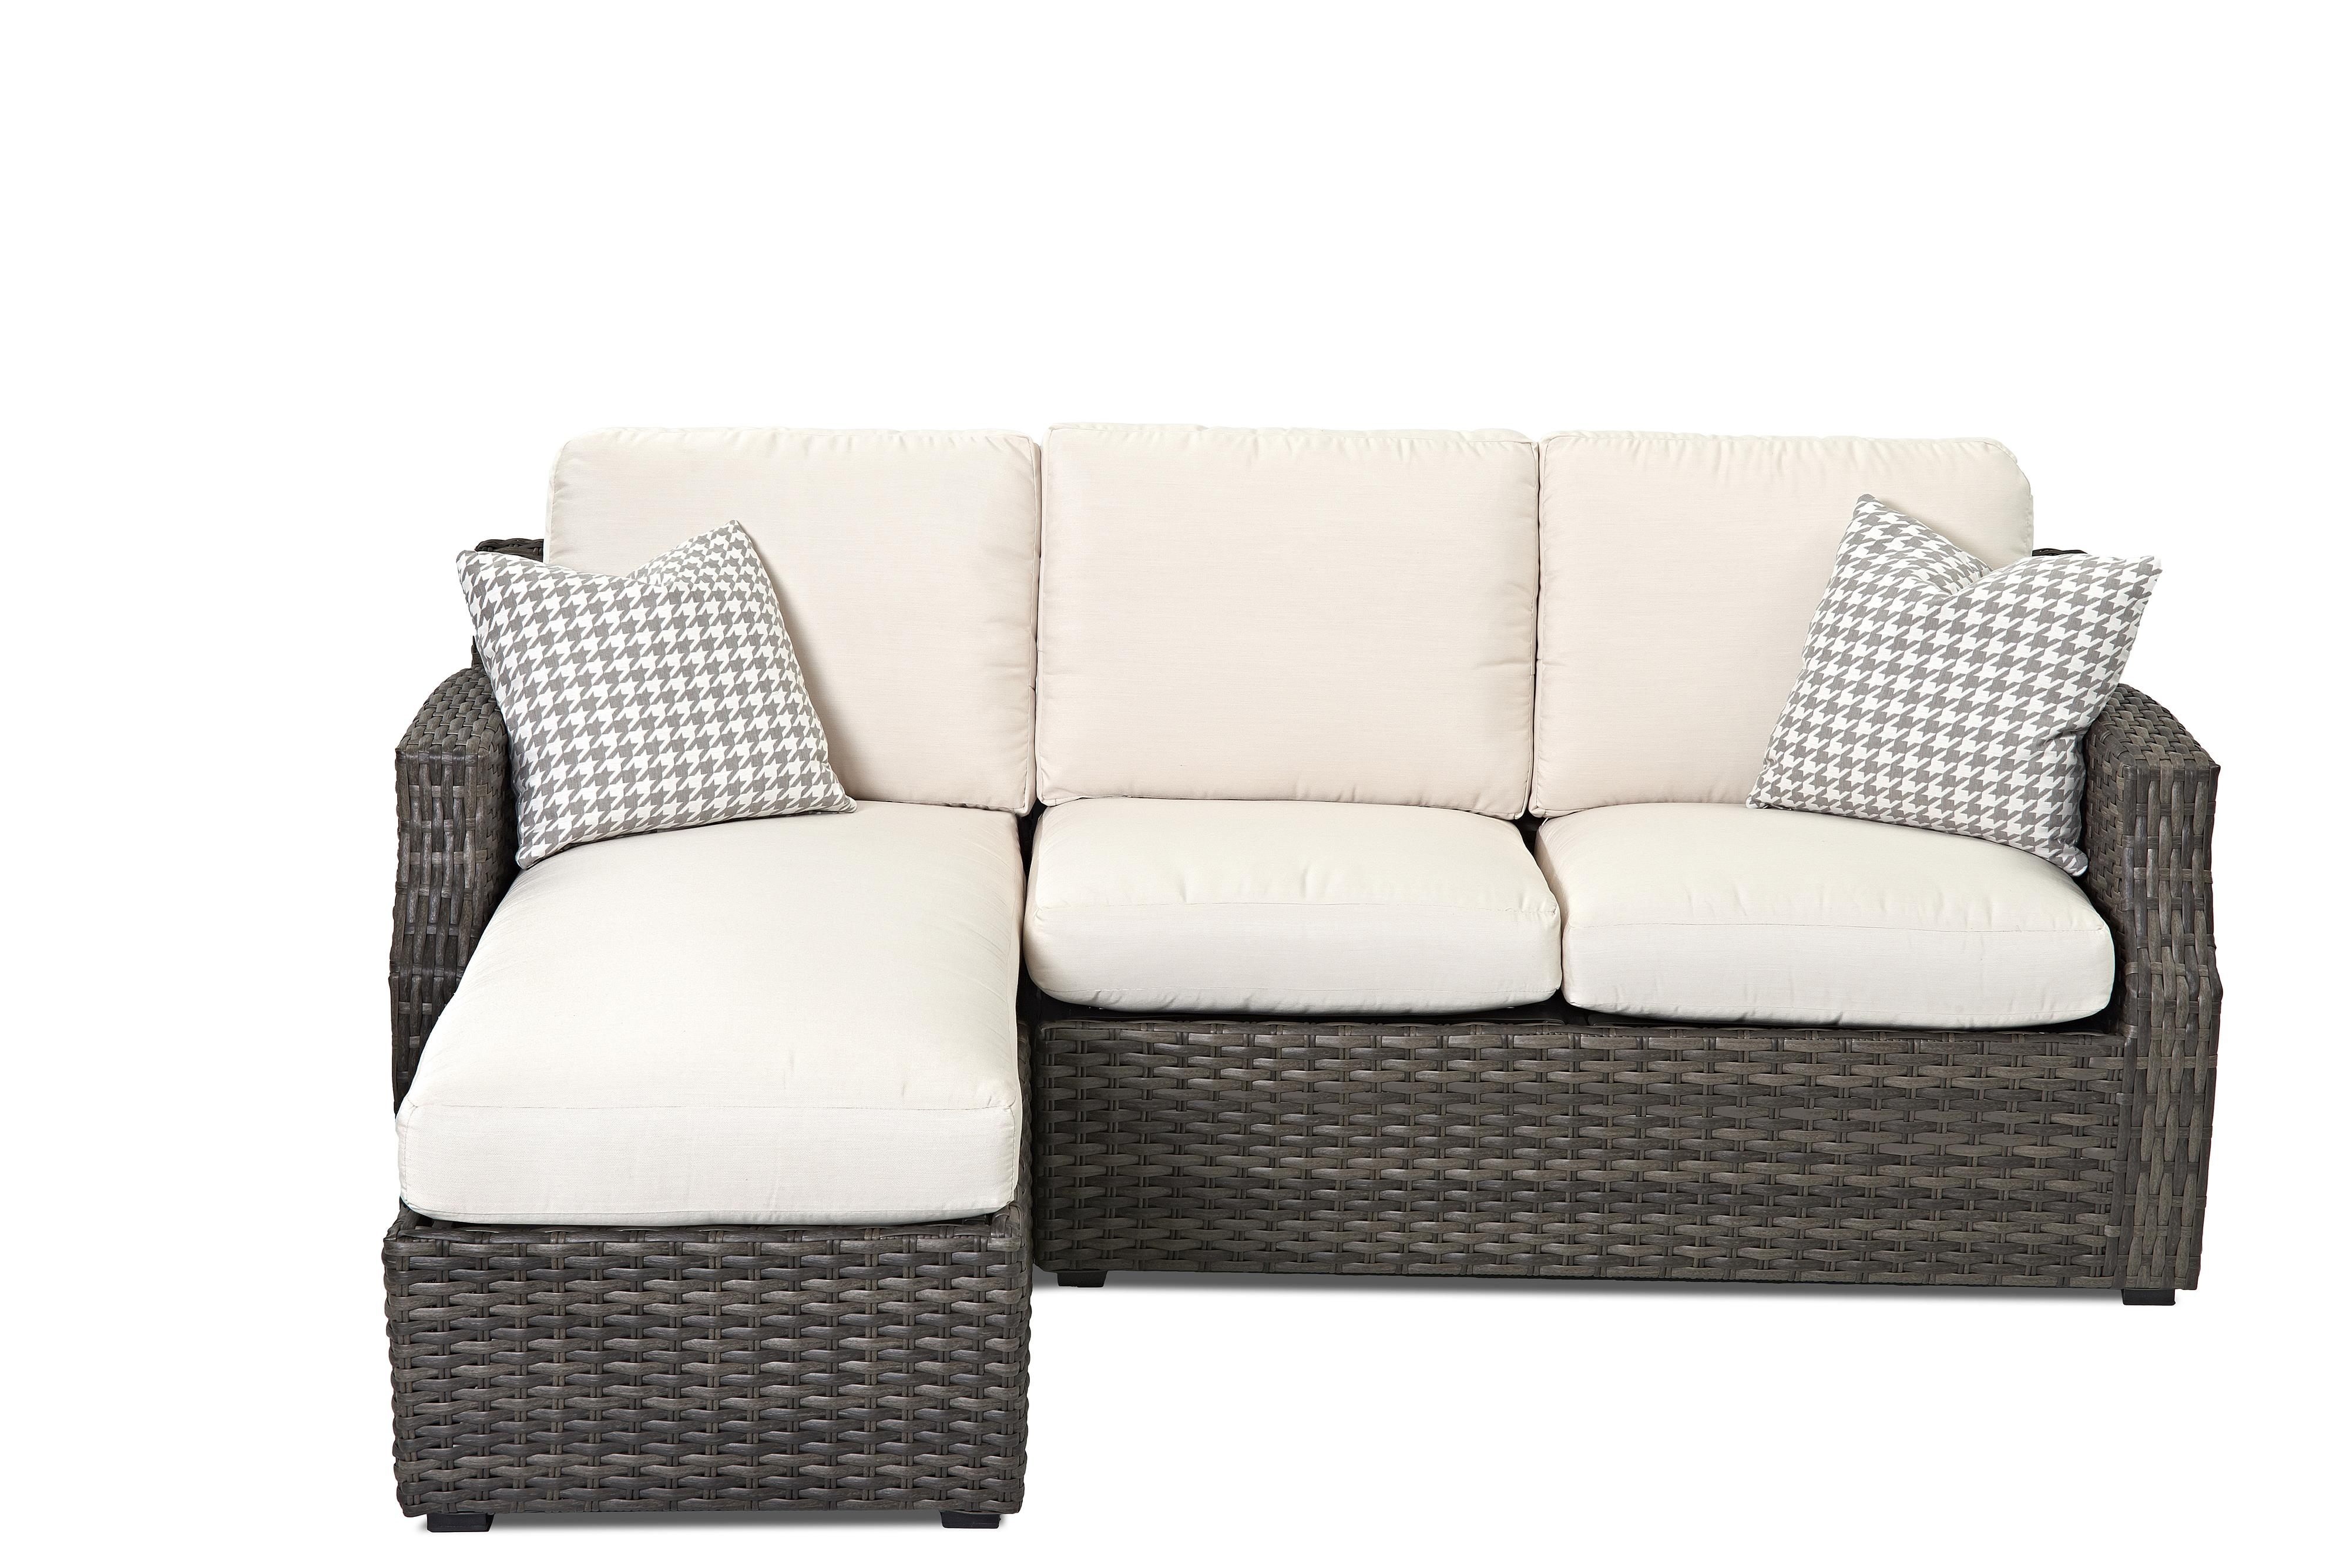 Cascade Outdoor Sectional Sofa with Chaise by Klaussner Outdoor at Rooms for Less